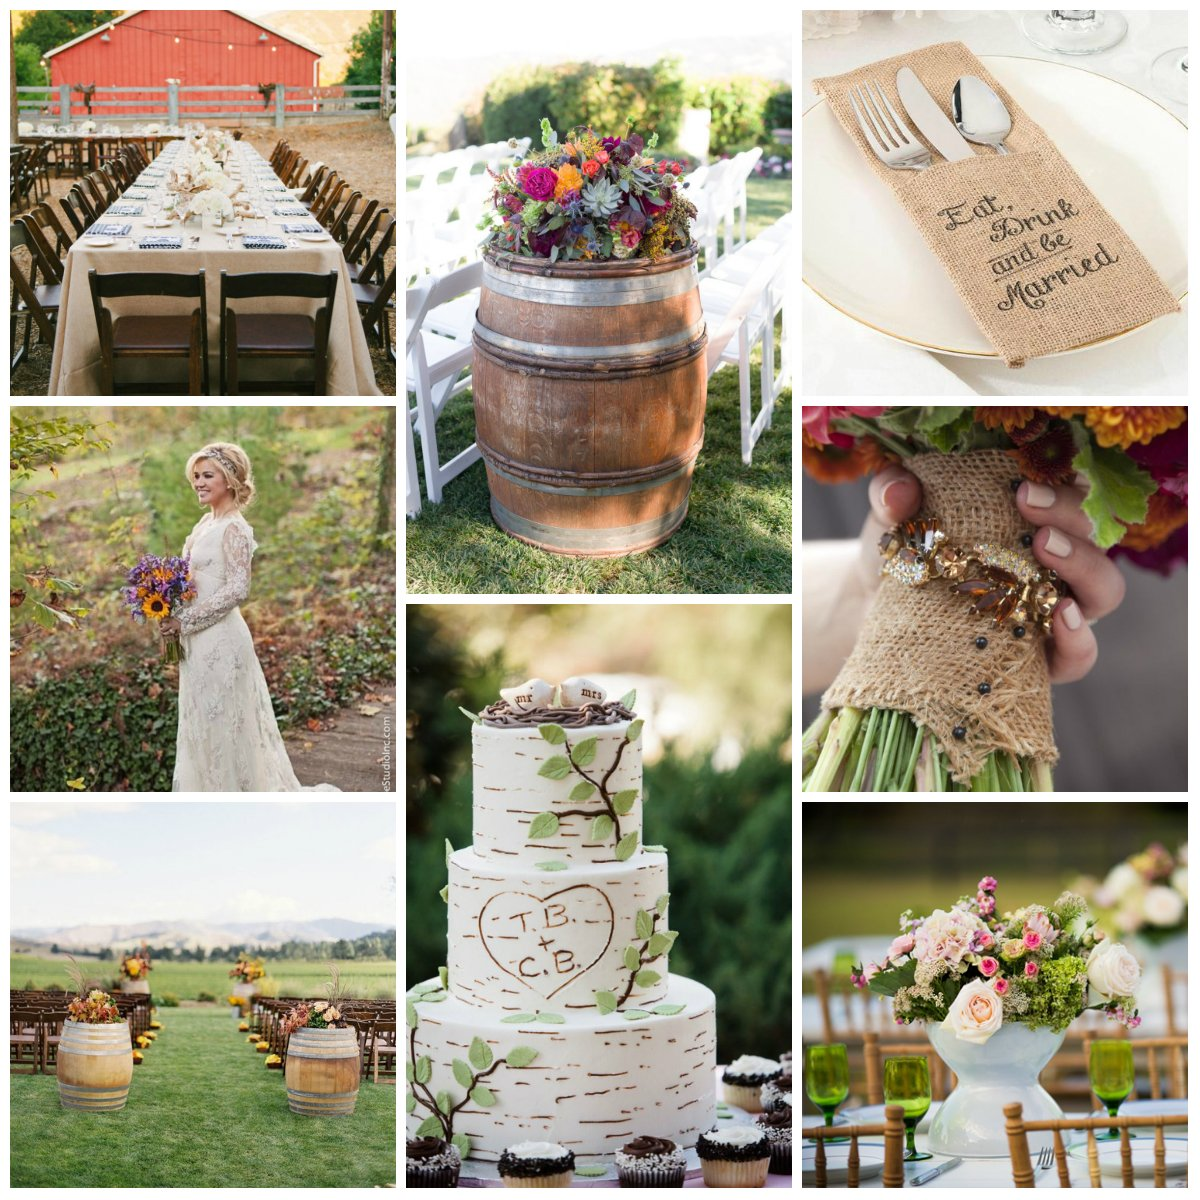 7 Barn Wedding Decoration Ideas For A Spring Wedding: A Few Ideas For Spring Wedding